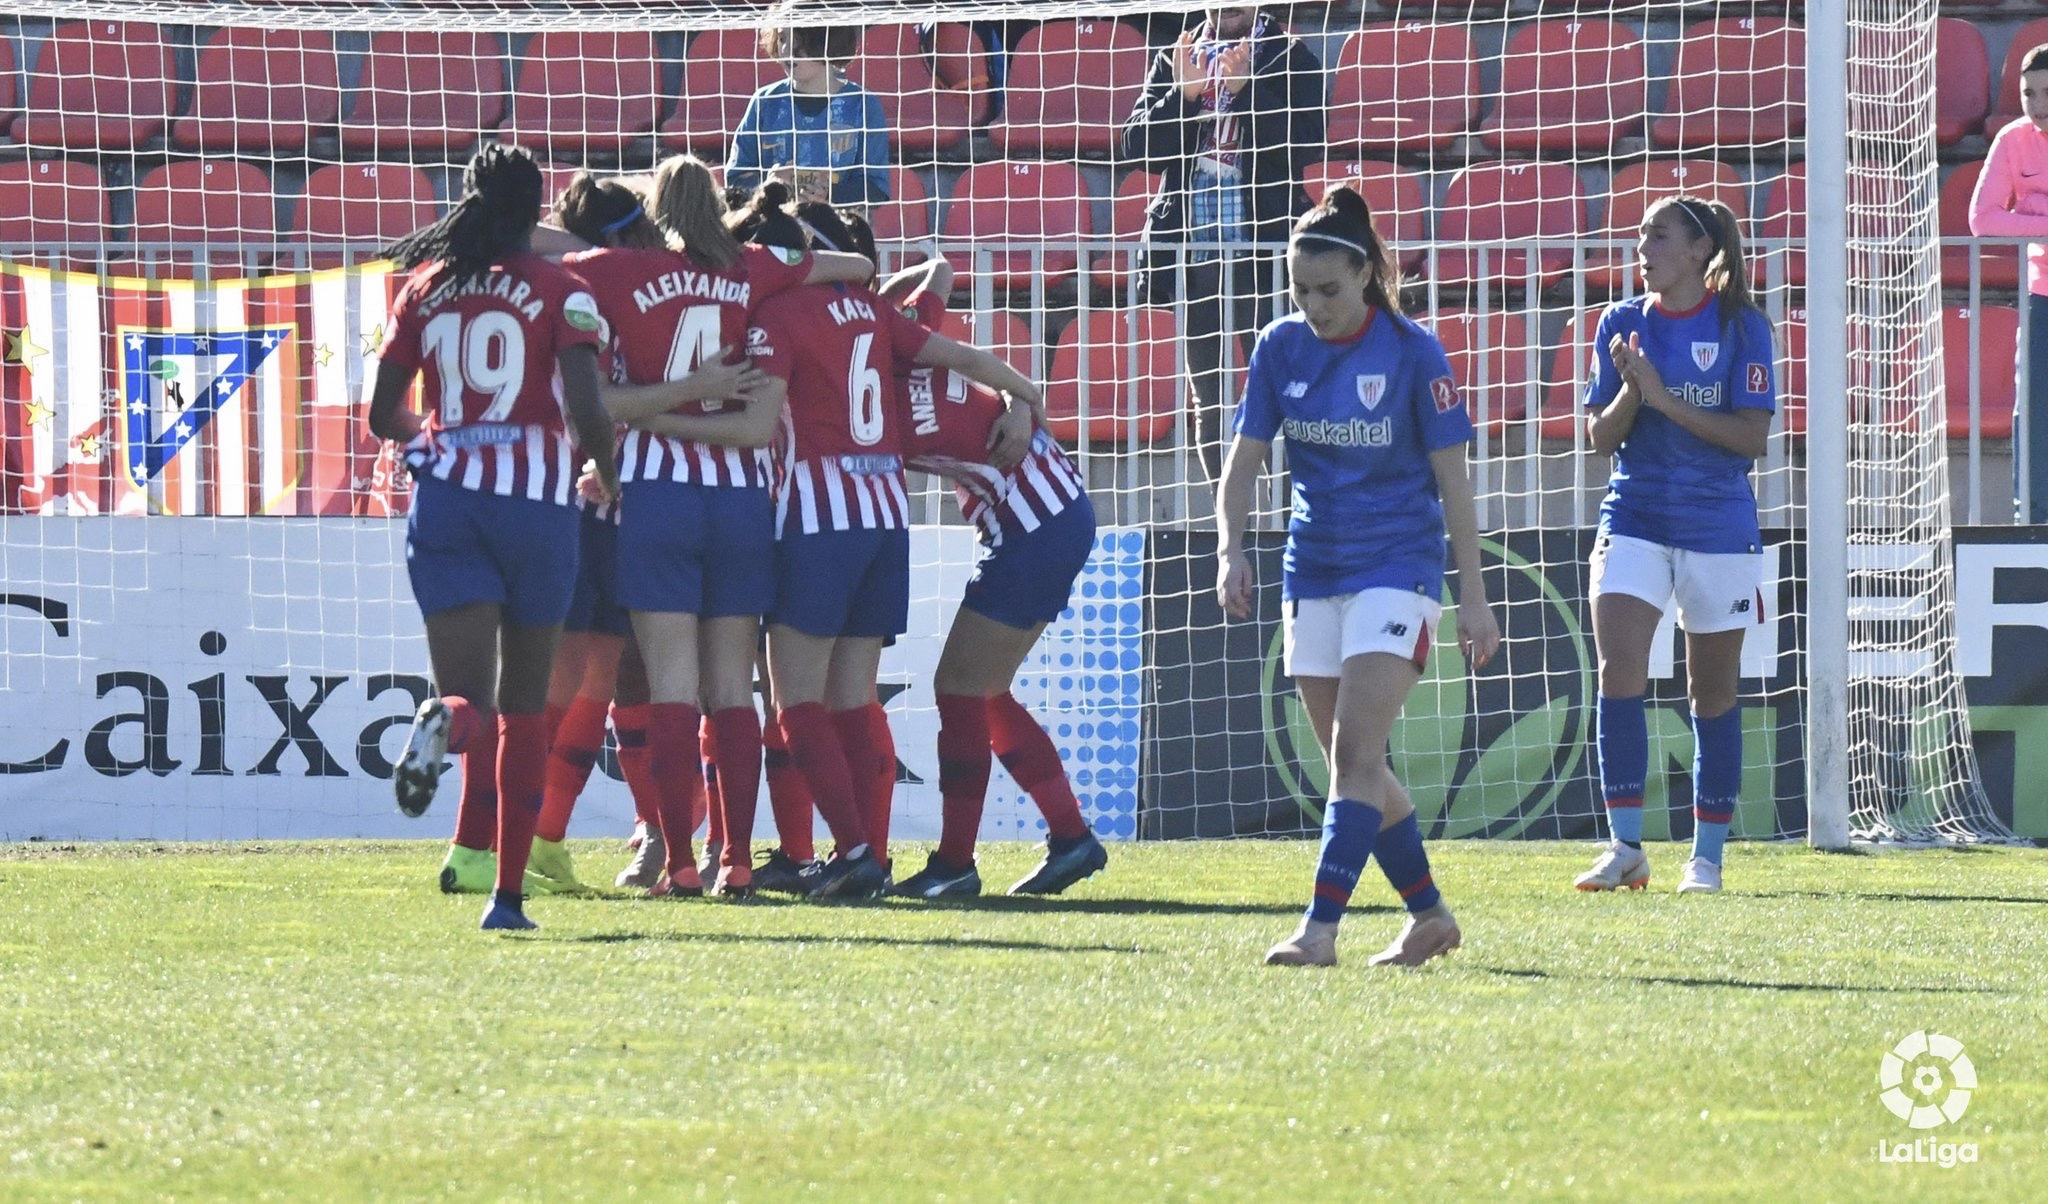 The Athletic Club for women has lost 3-0 against Atlético de Madrid.